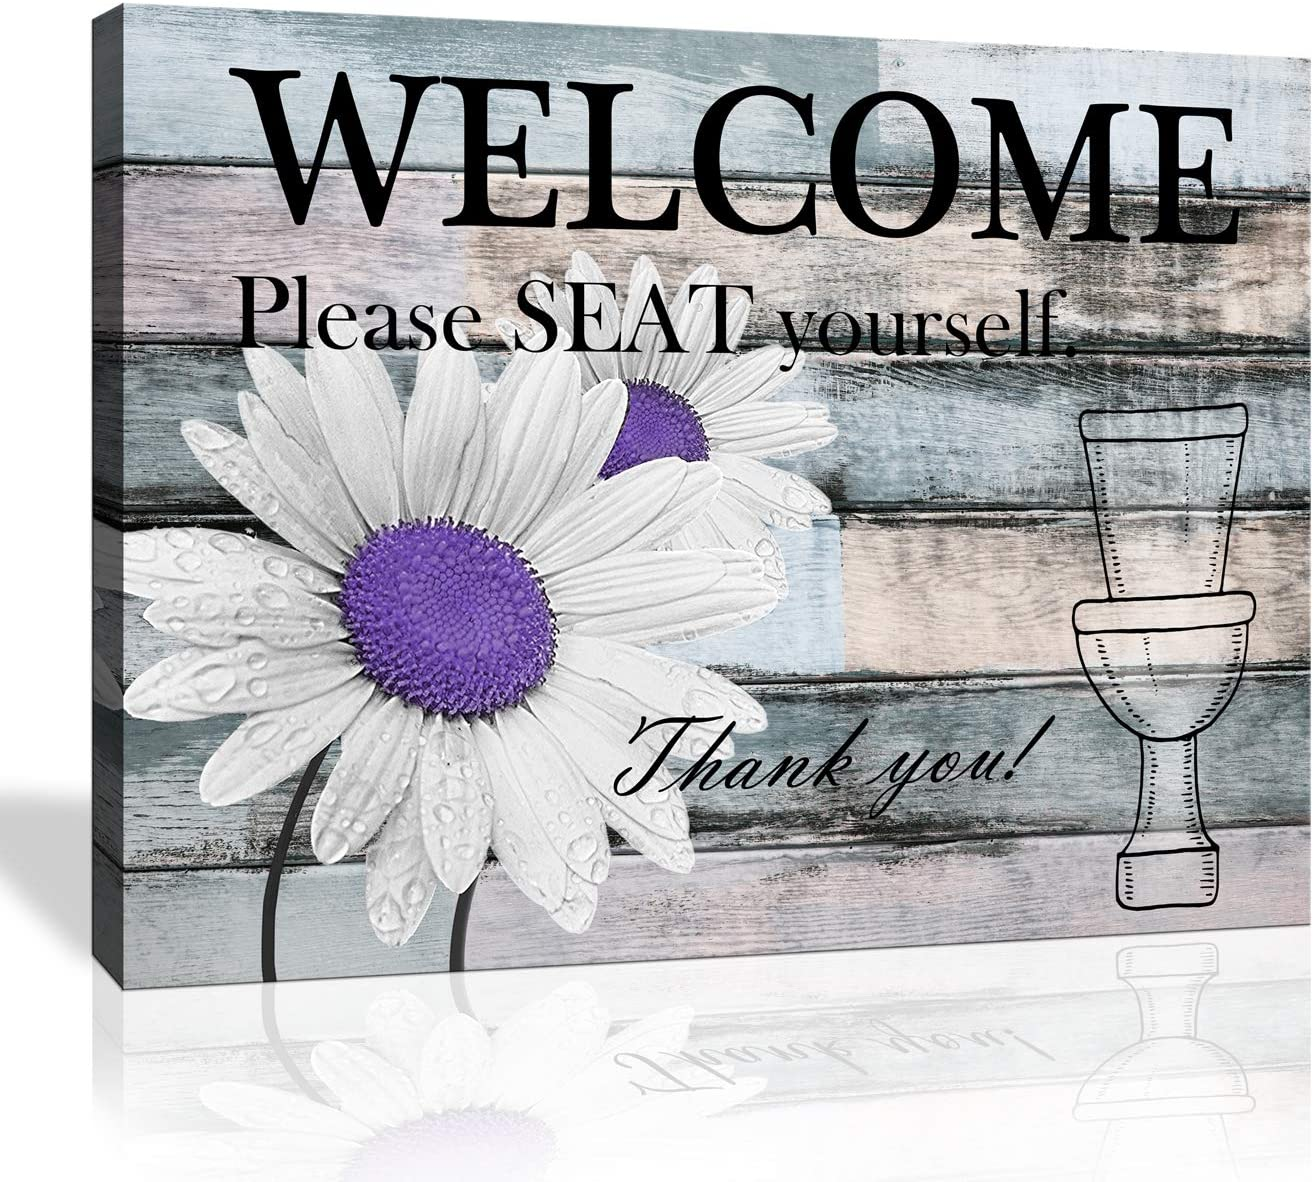 Bathroom Wall Decor Vintage wood Plaque Wall Hanging Welcome Sign Please Seat yourself Canvas Print Modern Artwork Purple Daisy Flower Decoration Ready to Hang Size 16x20